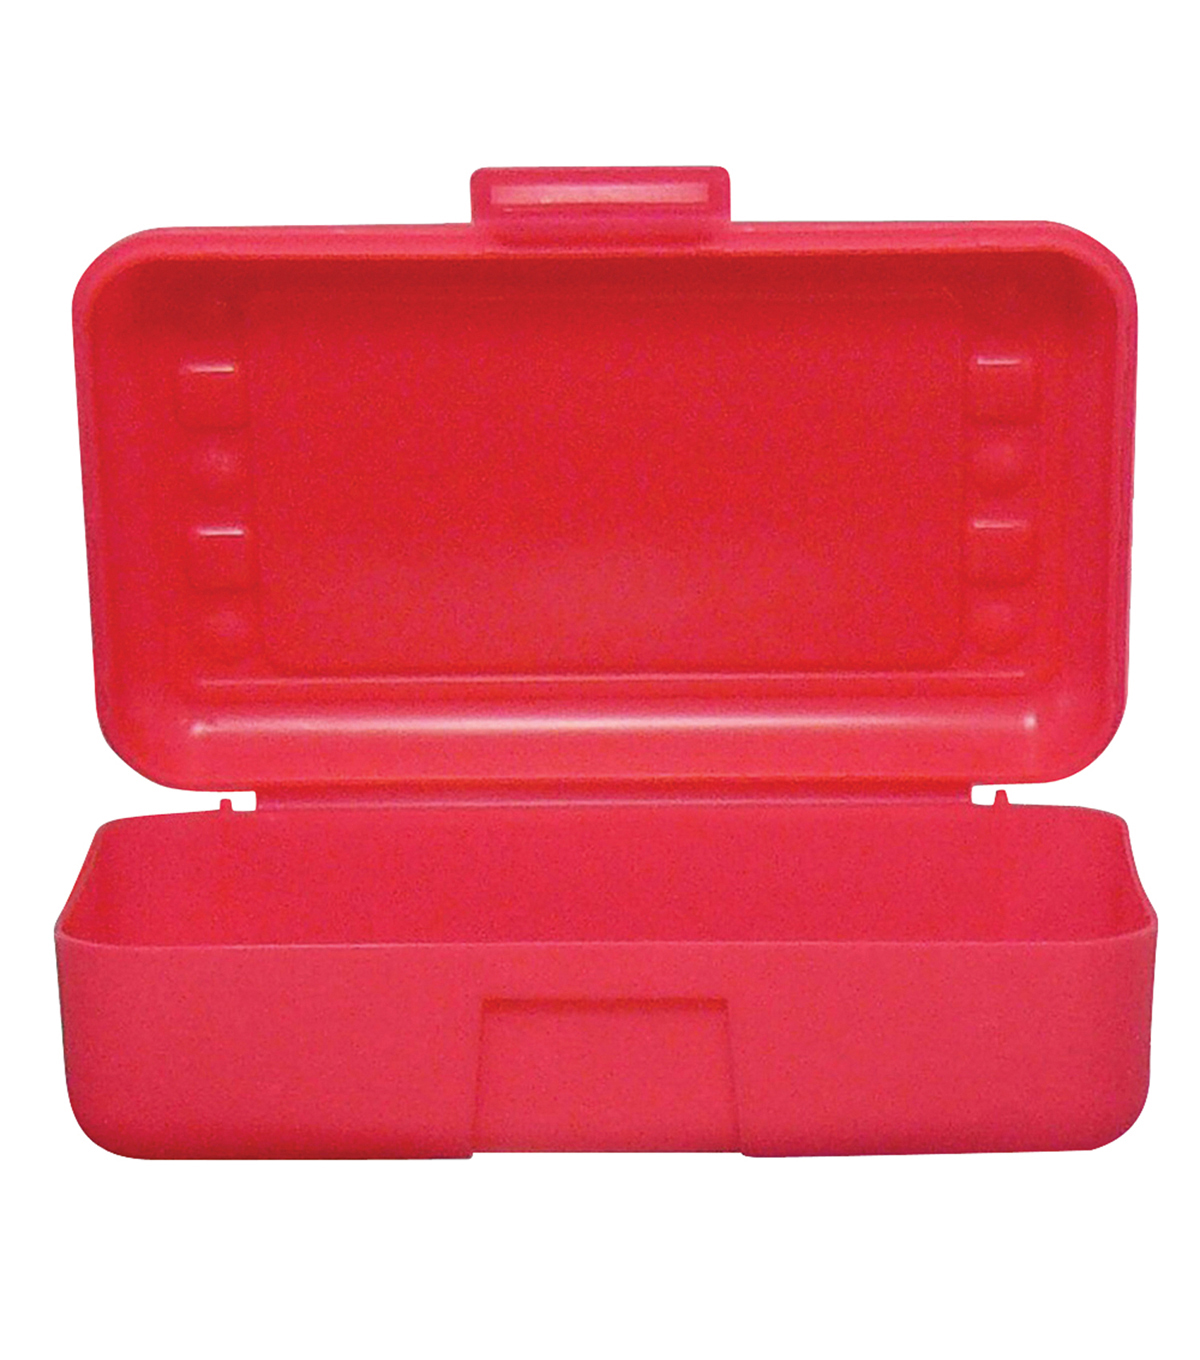 Romanoff Products Pencil Box, Pack of 12, Red